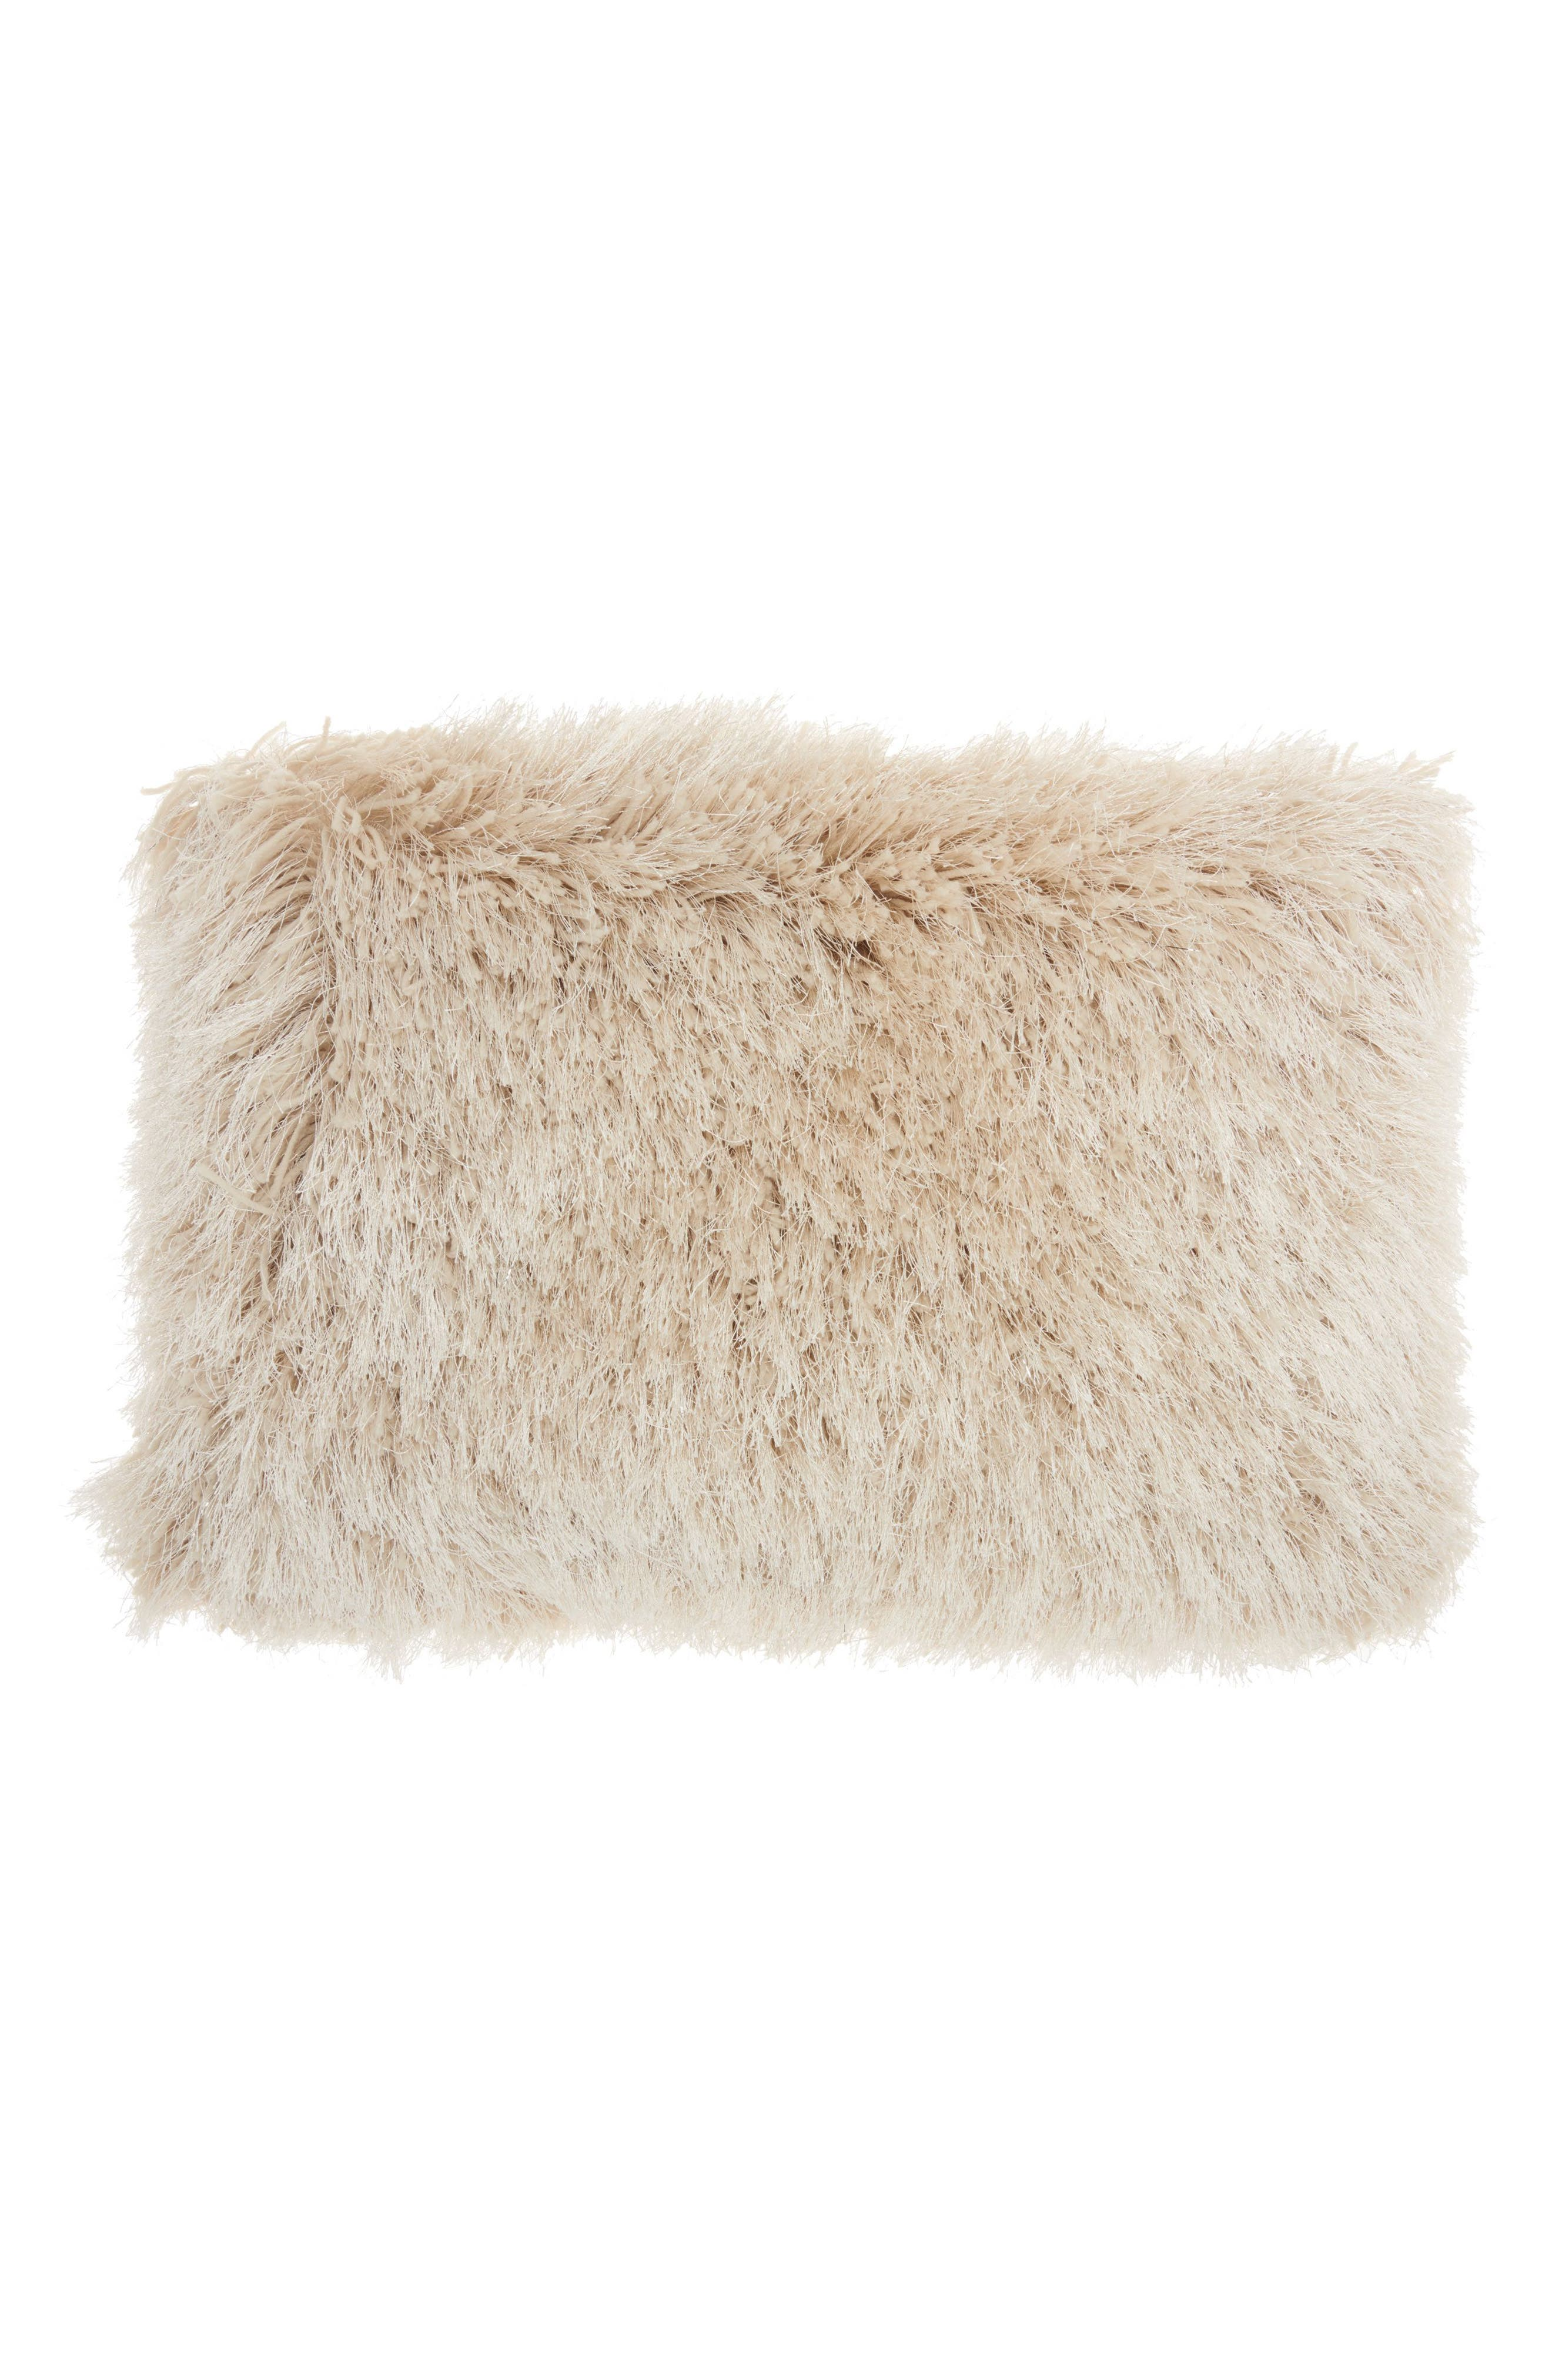 Main Image - Mina Victory Shimmer Faux Fur Pillow